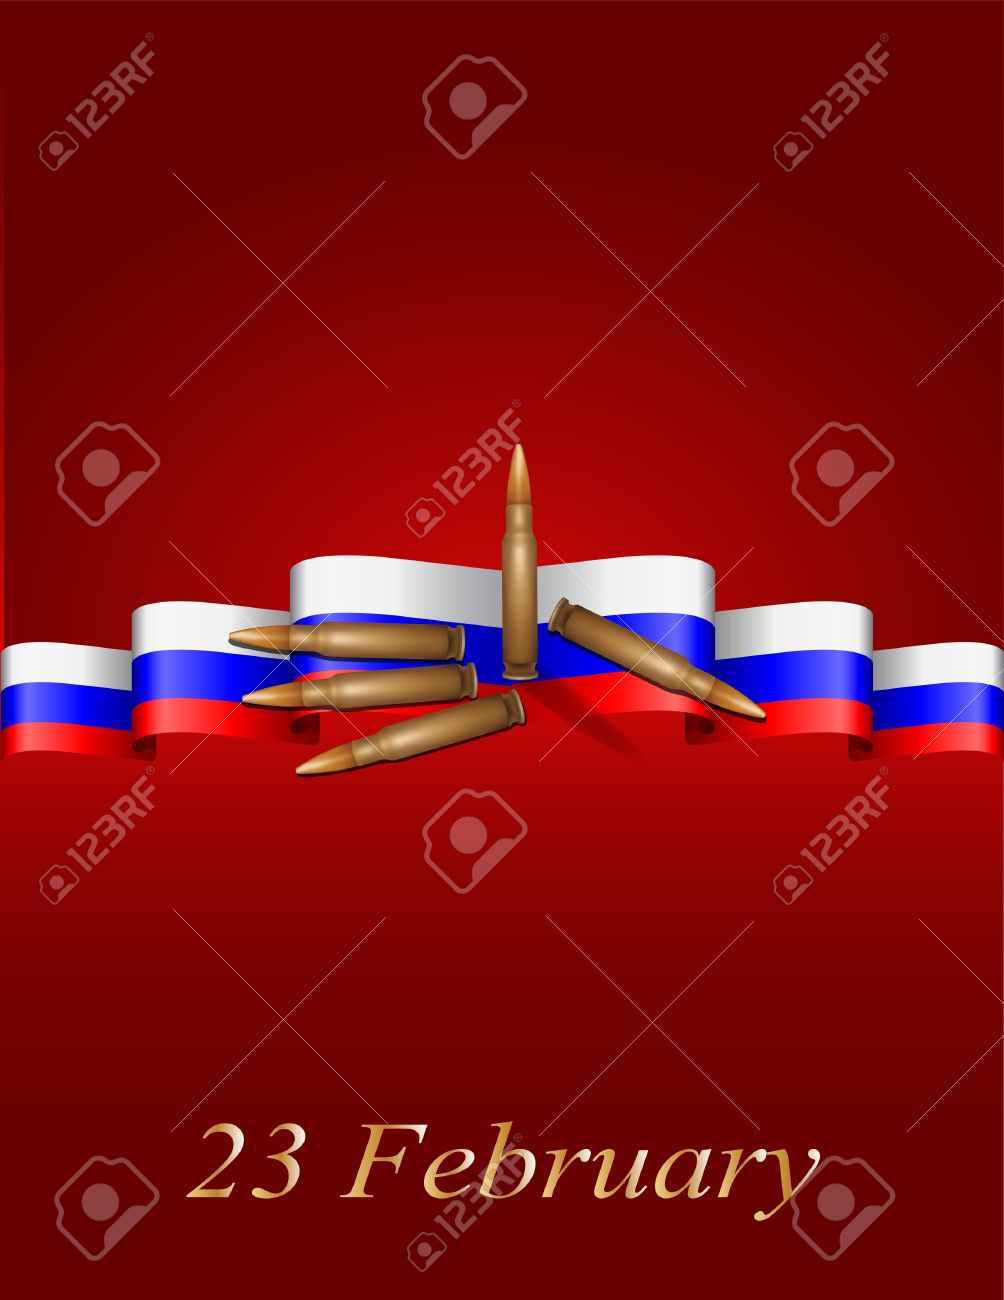 vector greeting card with Russian flag, related to Victory Day or 23 February Stock Vector - 17274691